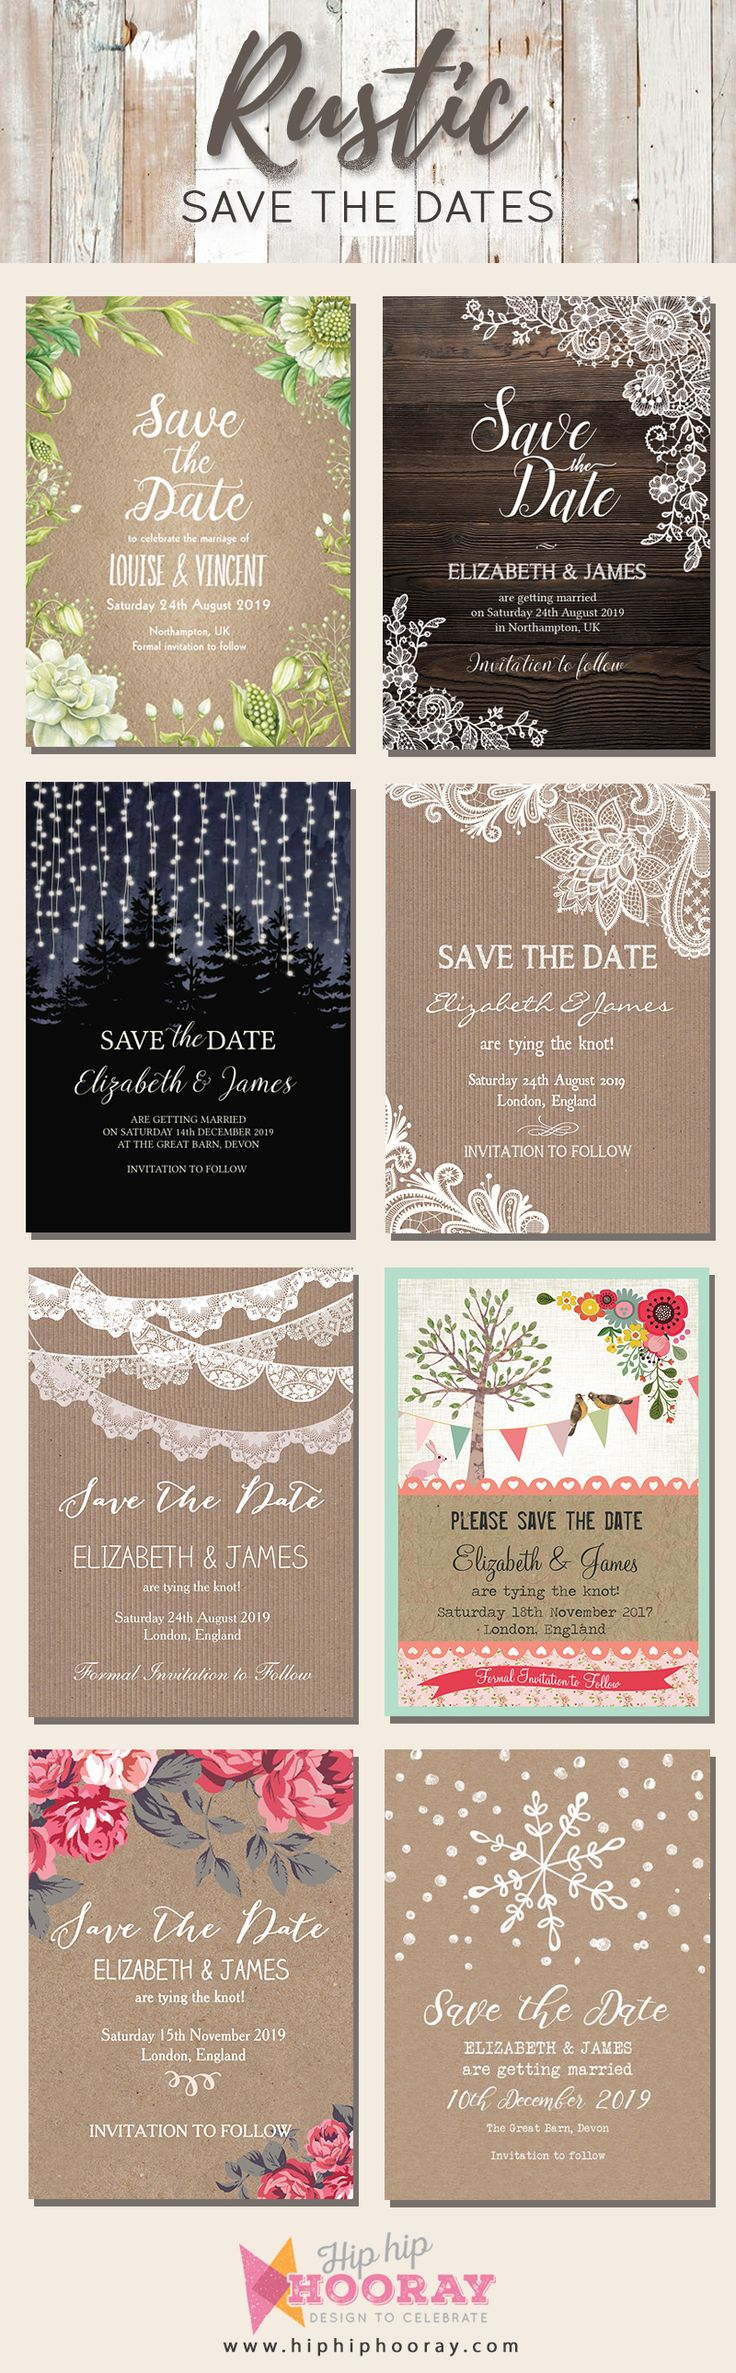 funny wedding invitation rsvp goes viral%0A A range of beautiful rustic save the date cards available  perfect for DIY  brides planning relaxed and informal yet thoughtful weddings